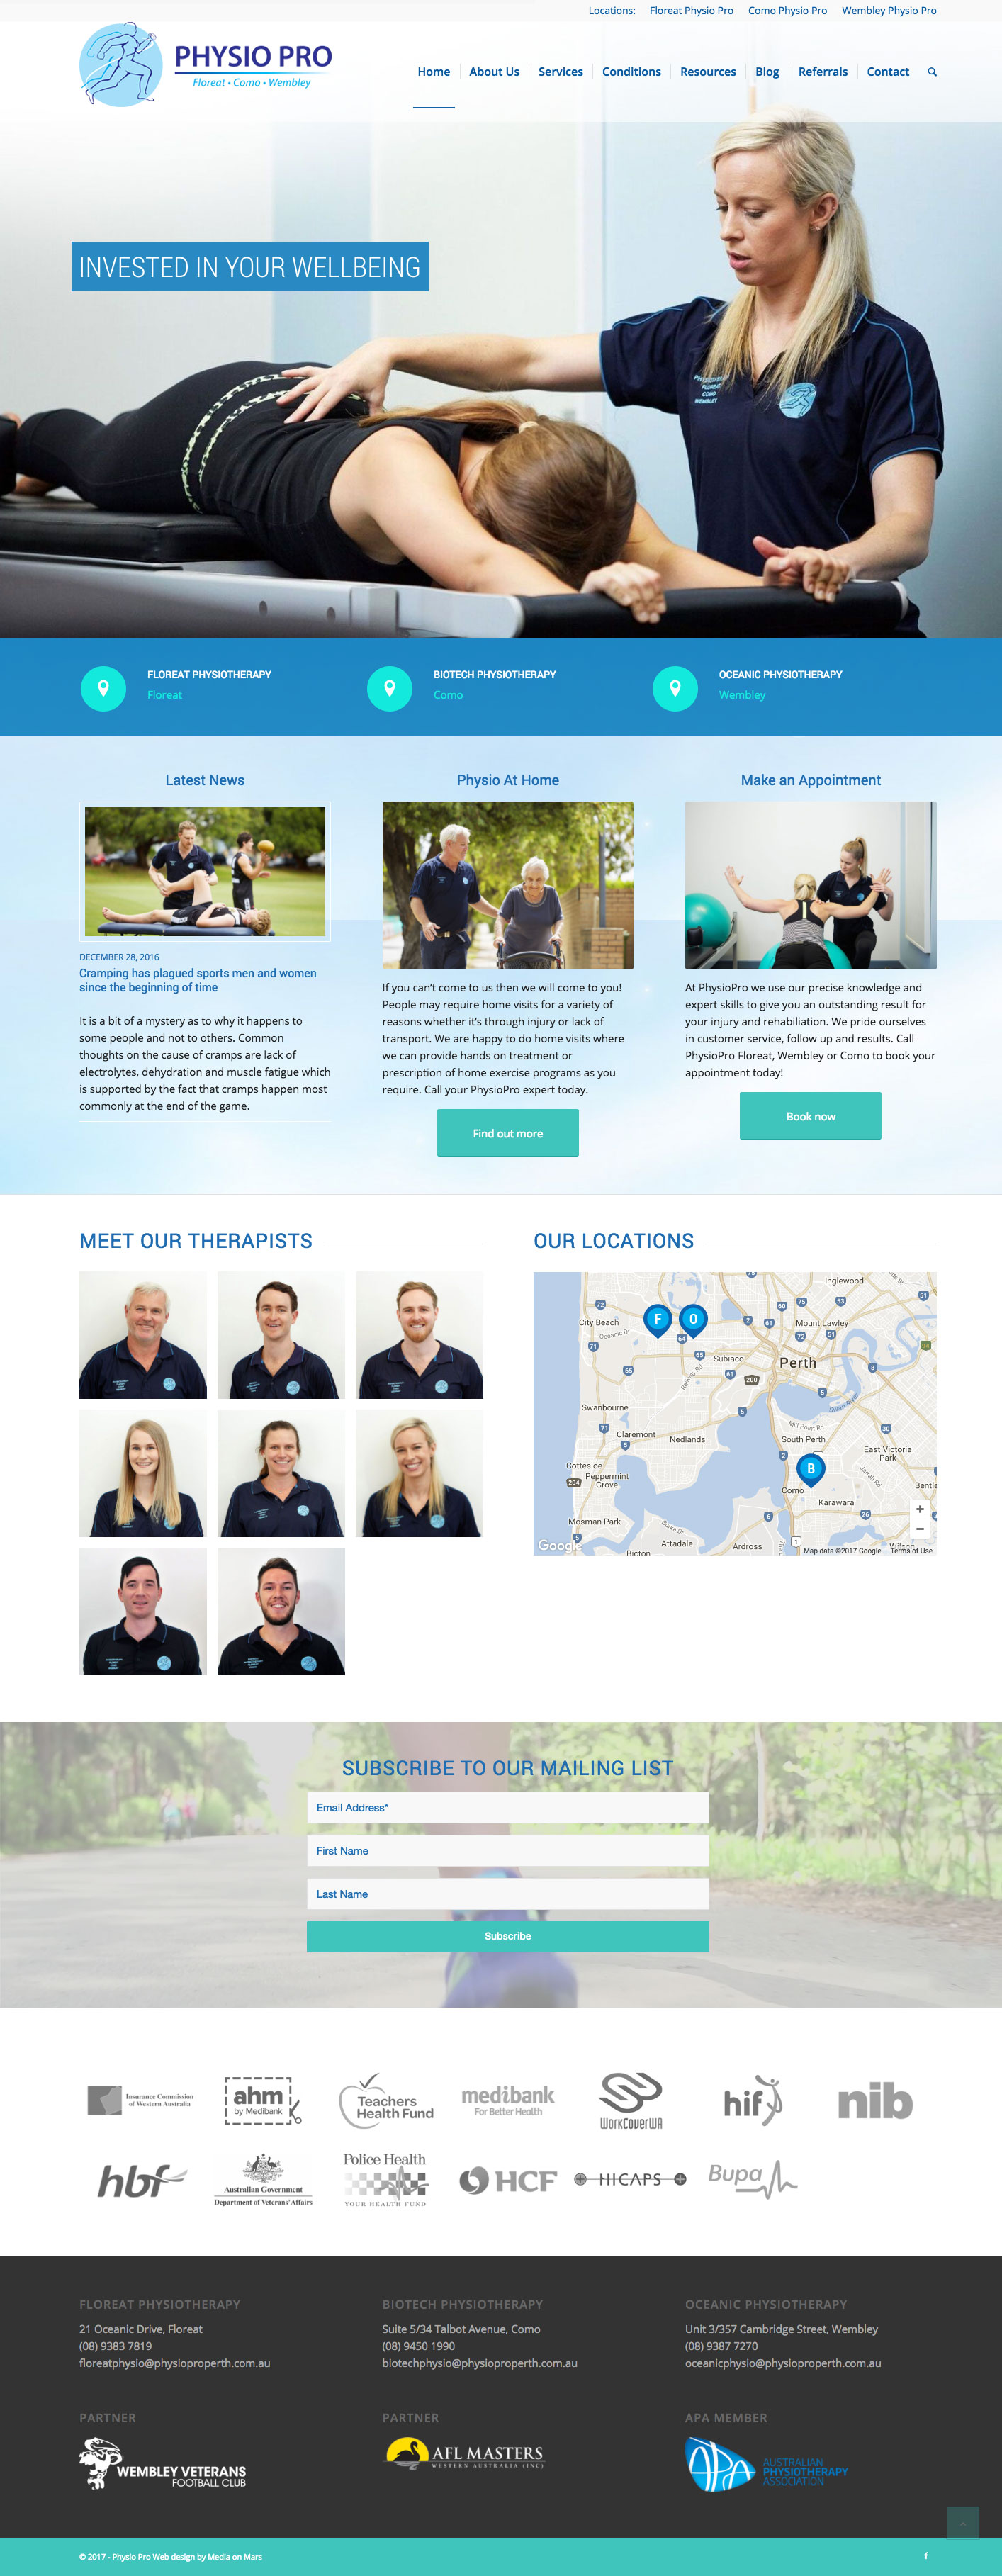 Physio Pro website screen grab